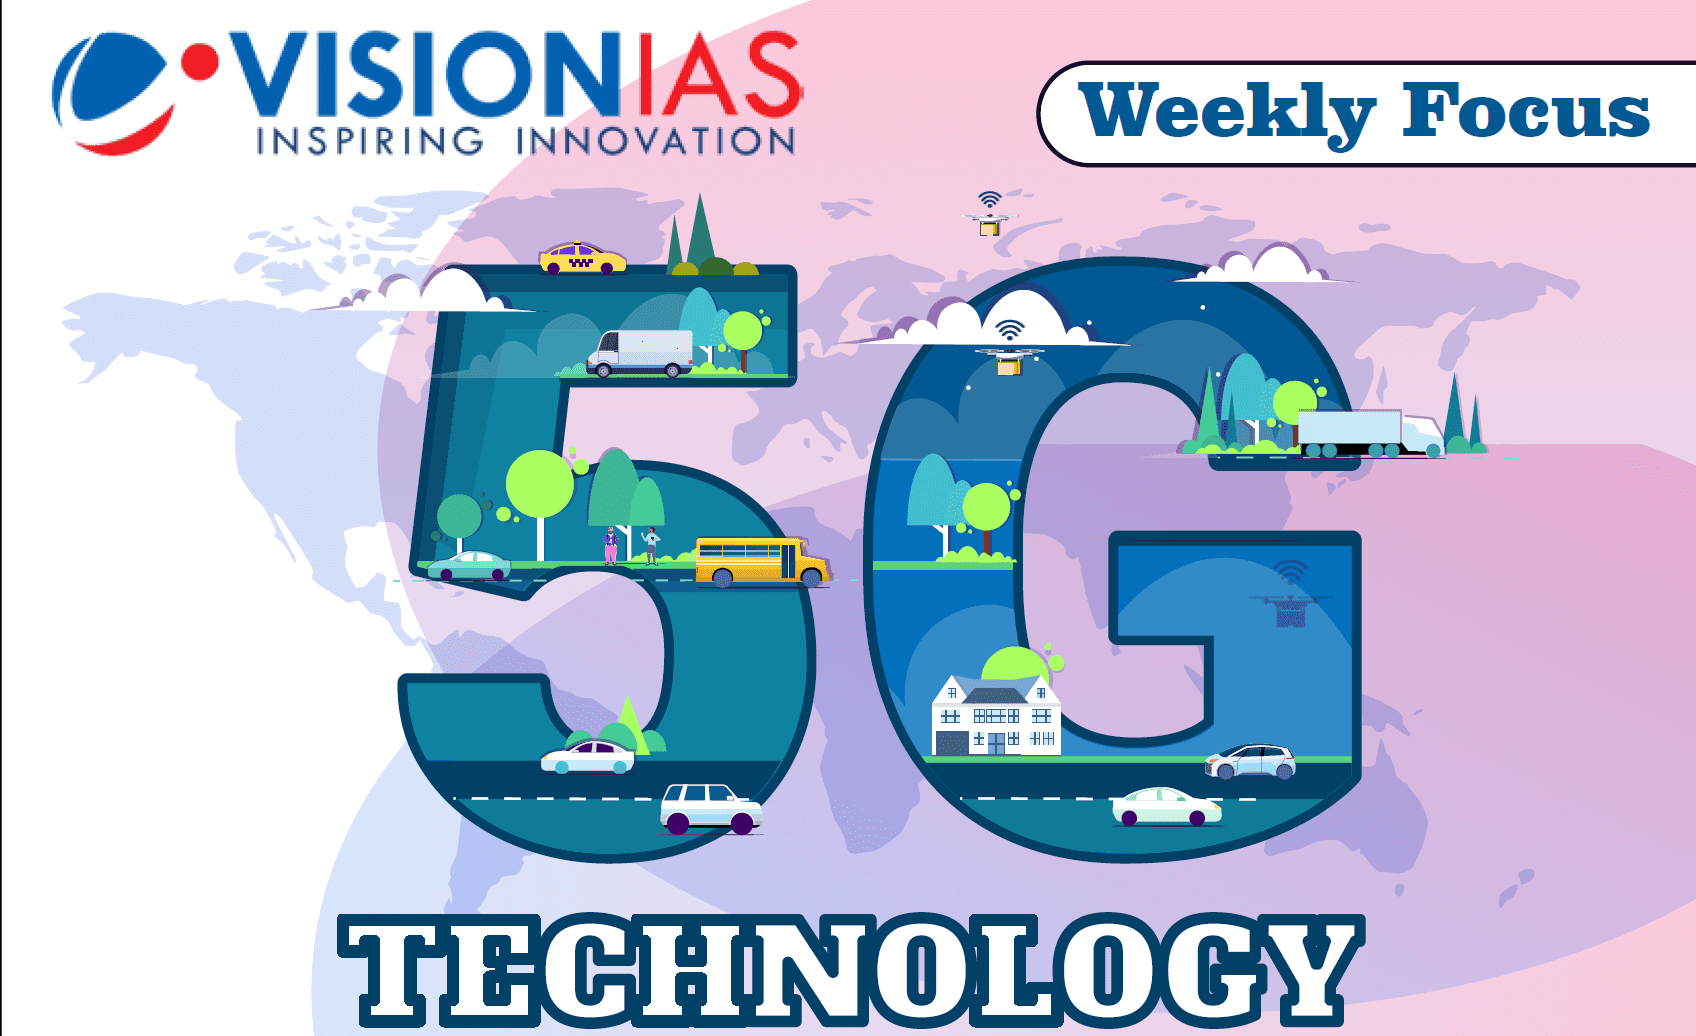 5G Technology Challenges and Opportunities